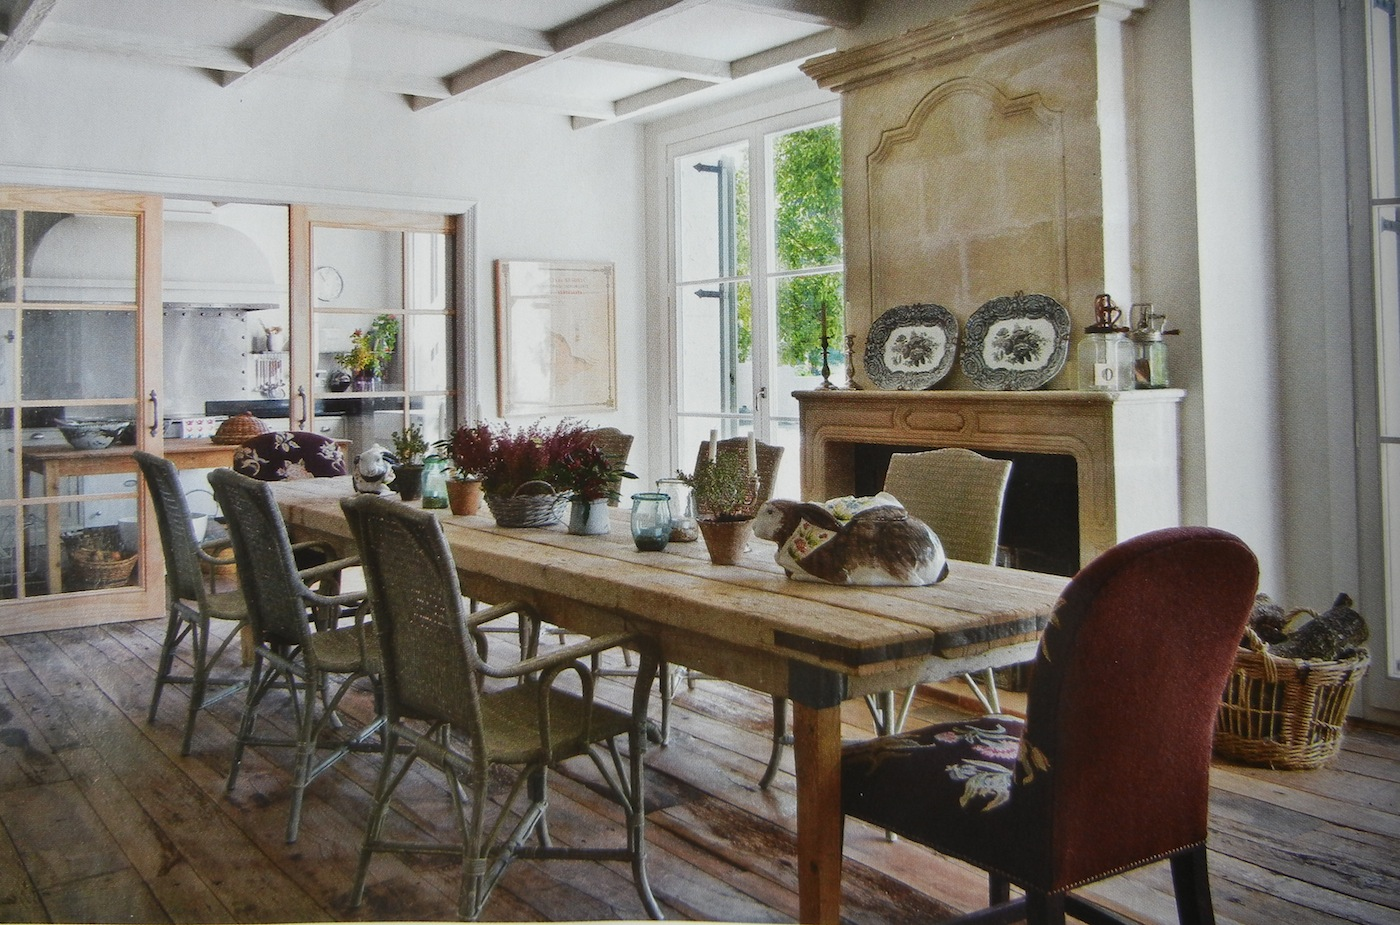 Auction decorating rustic dining tables in spain for Rustic dining room designs